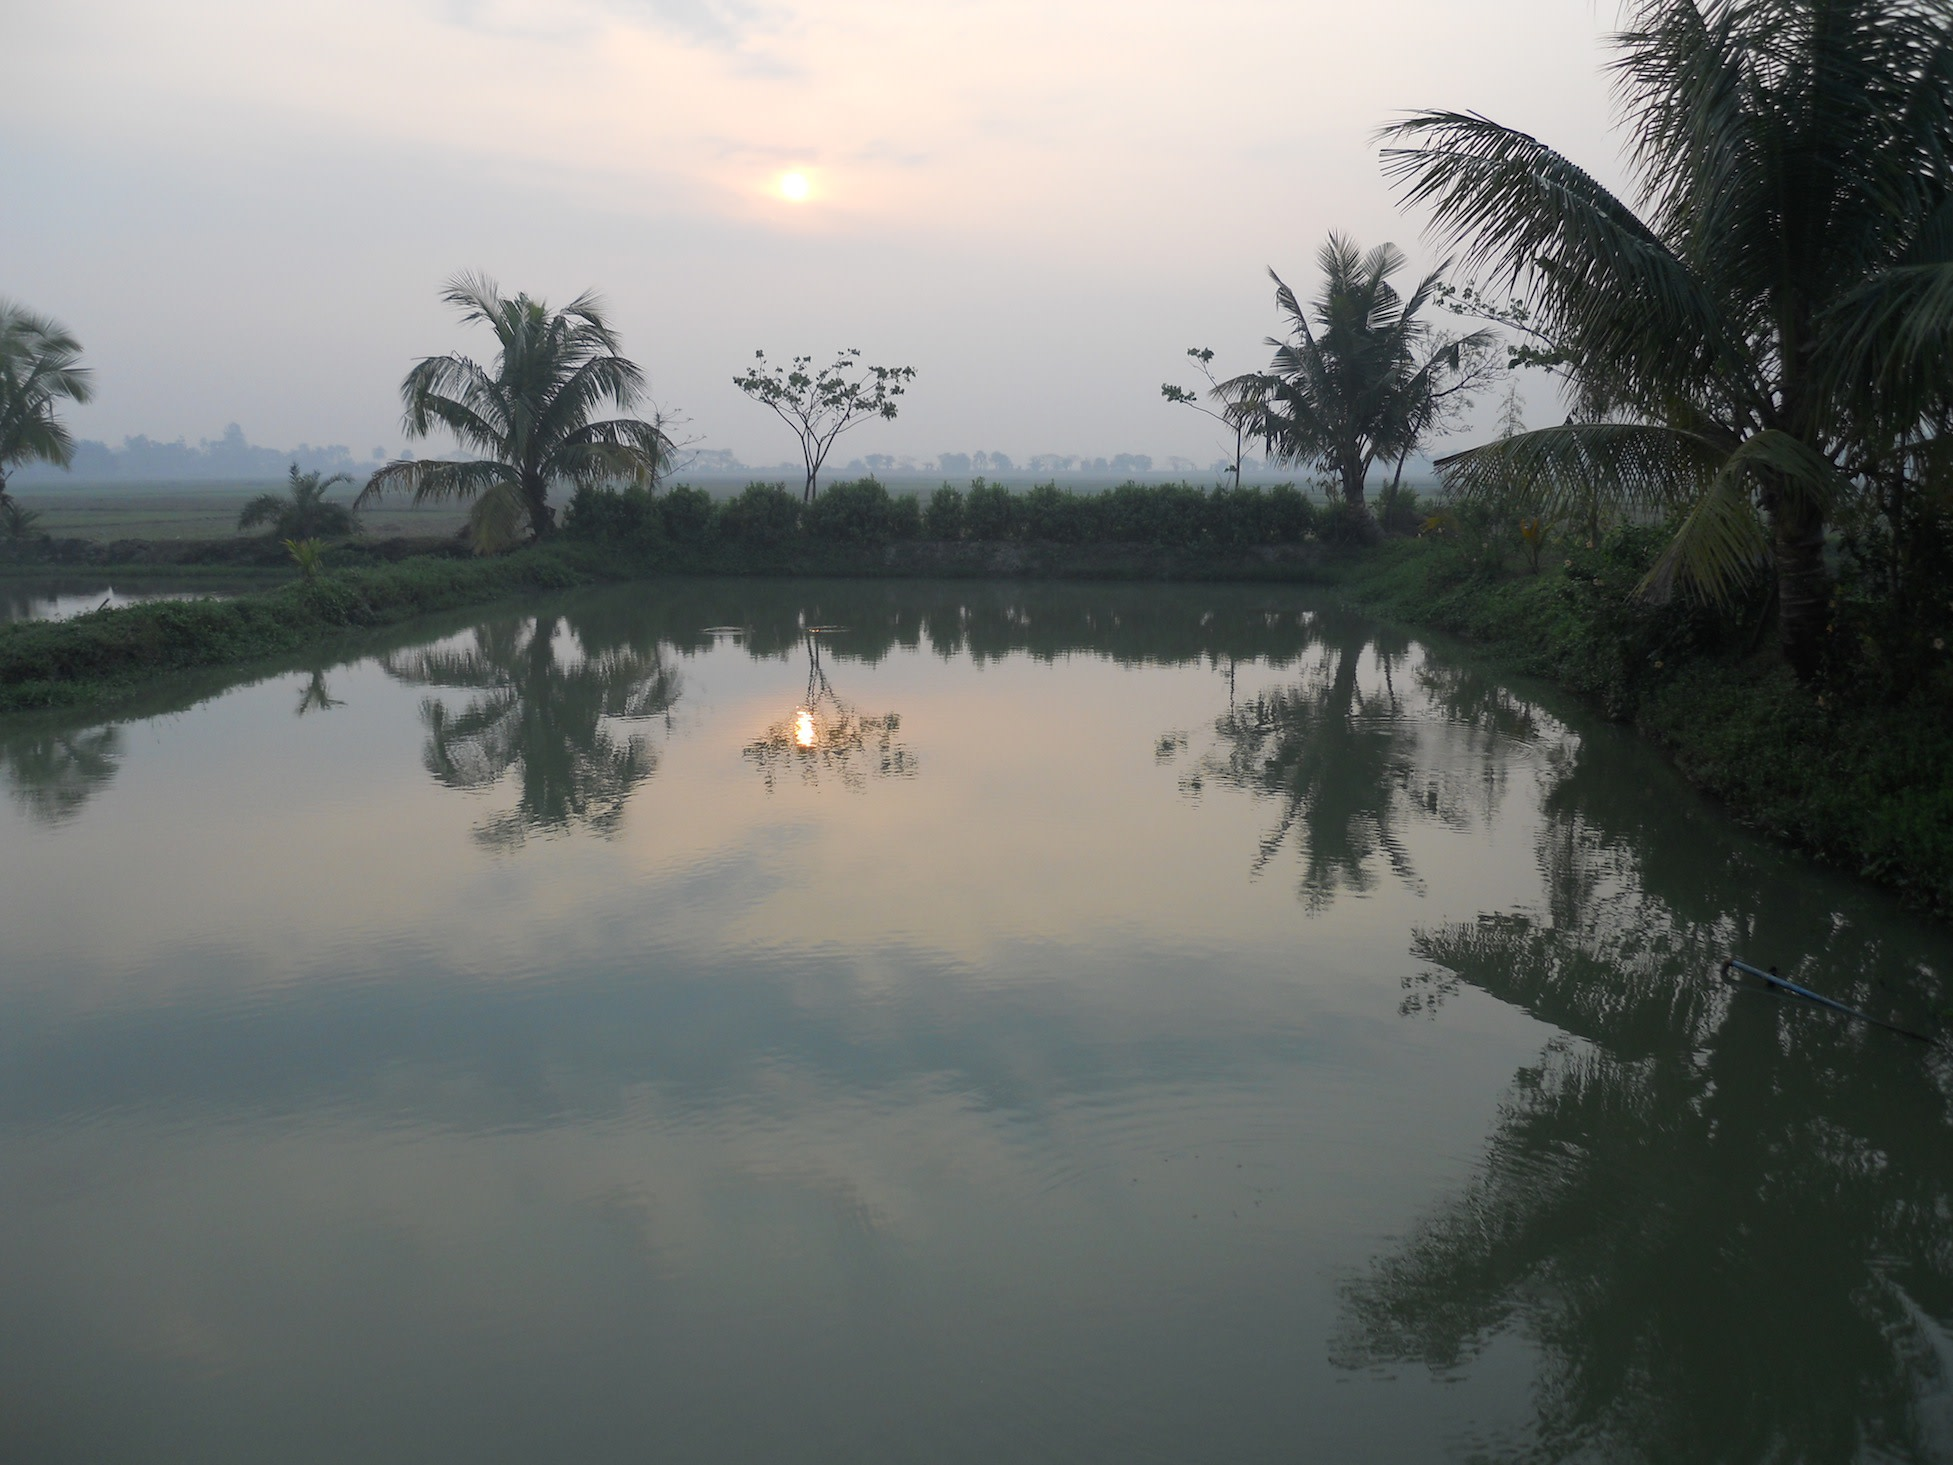 Typical Bengali fishpond right outside the guesthouse being lit up by a beautiful sunrise.